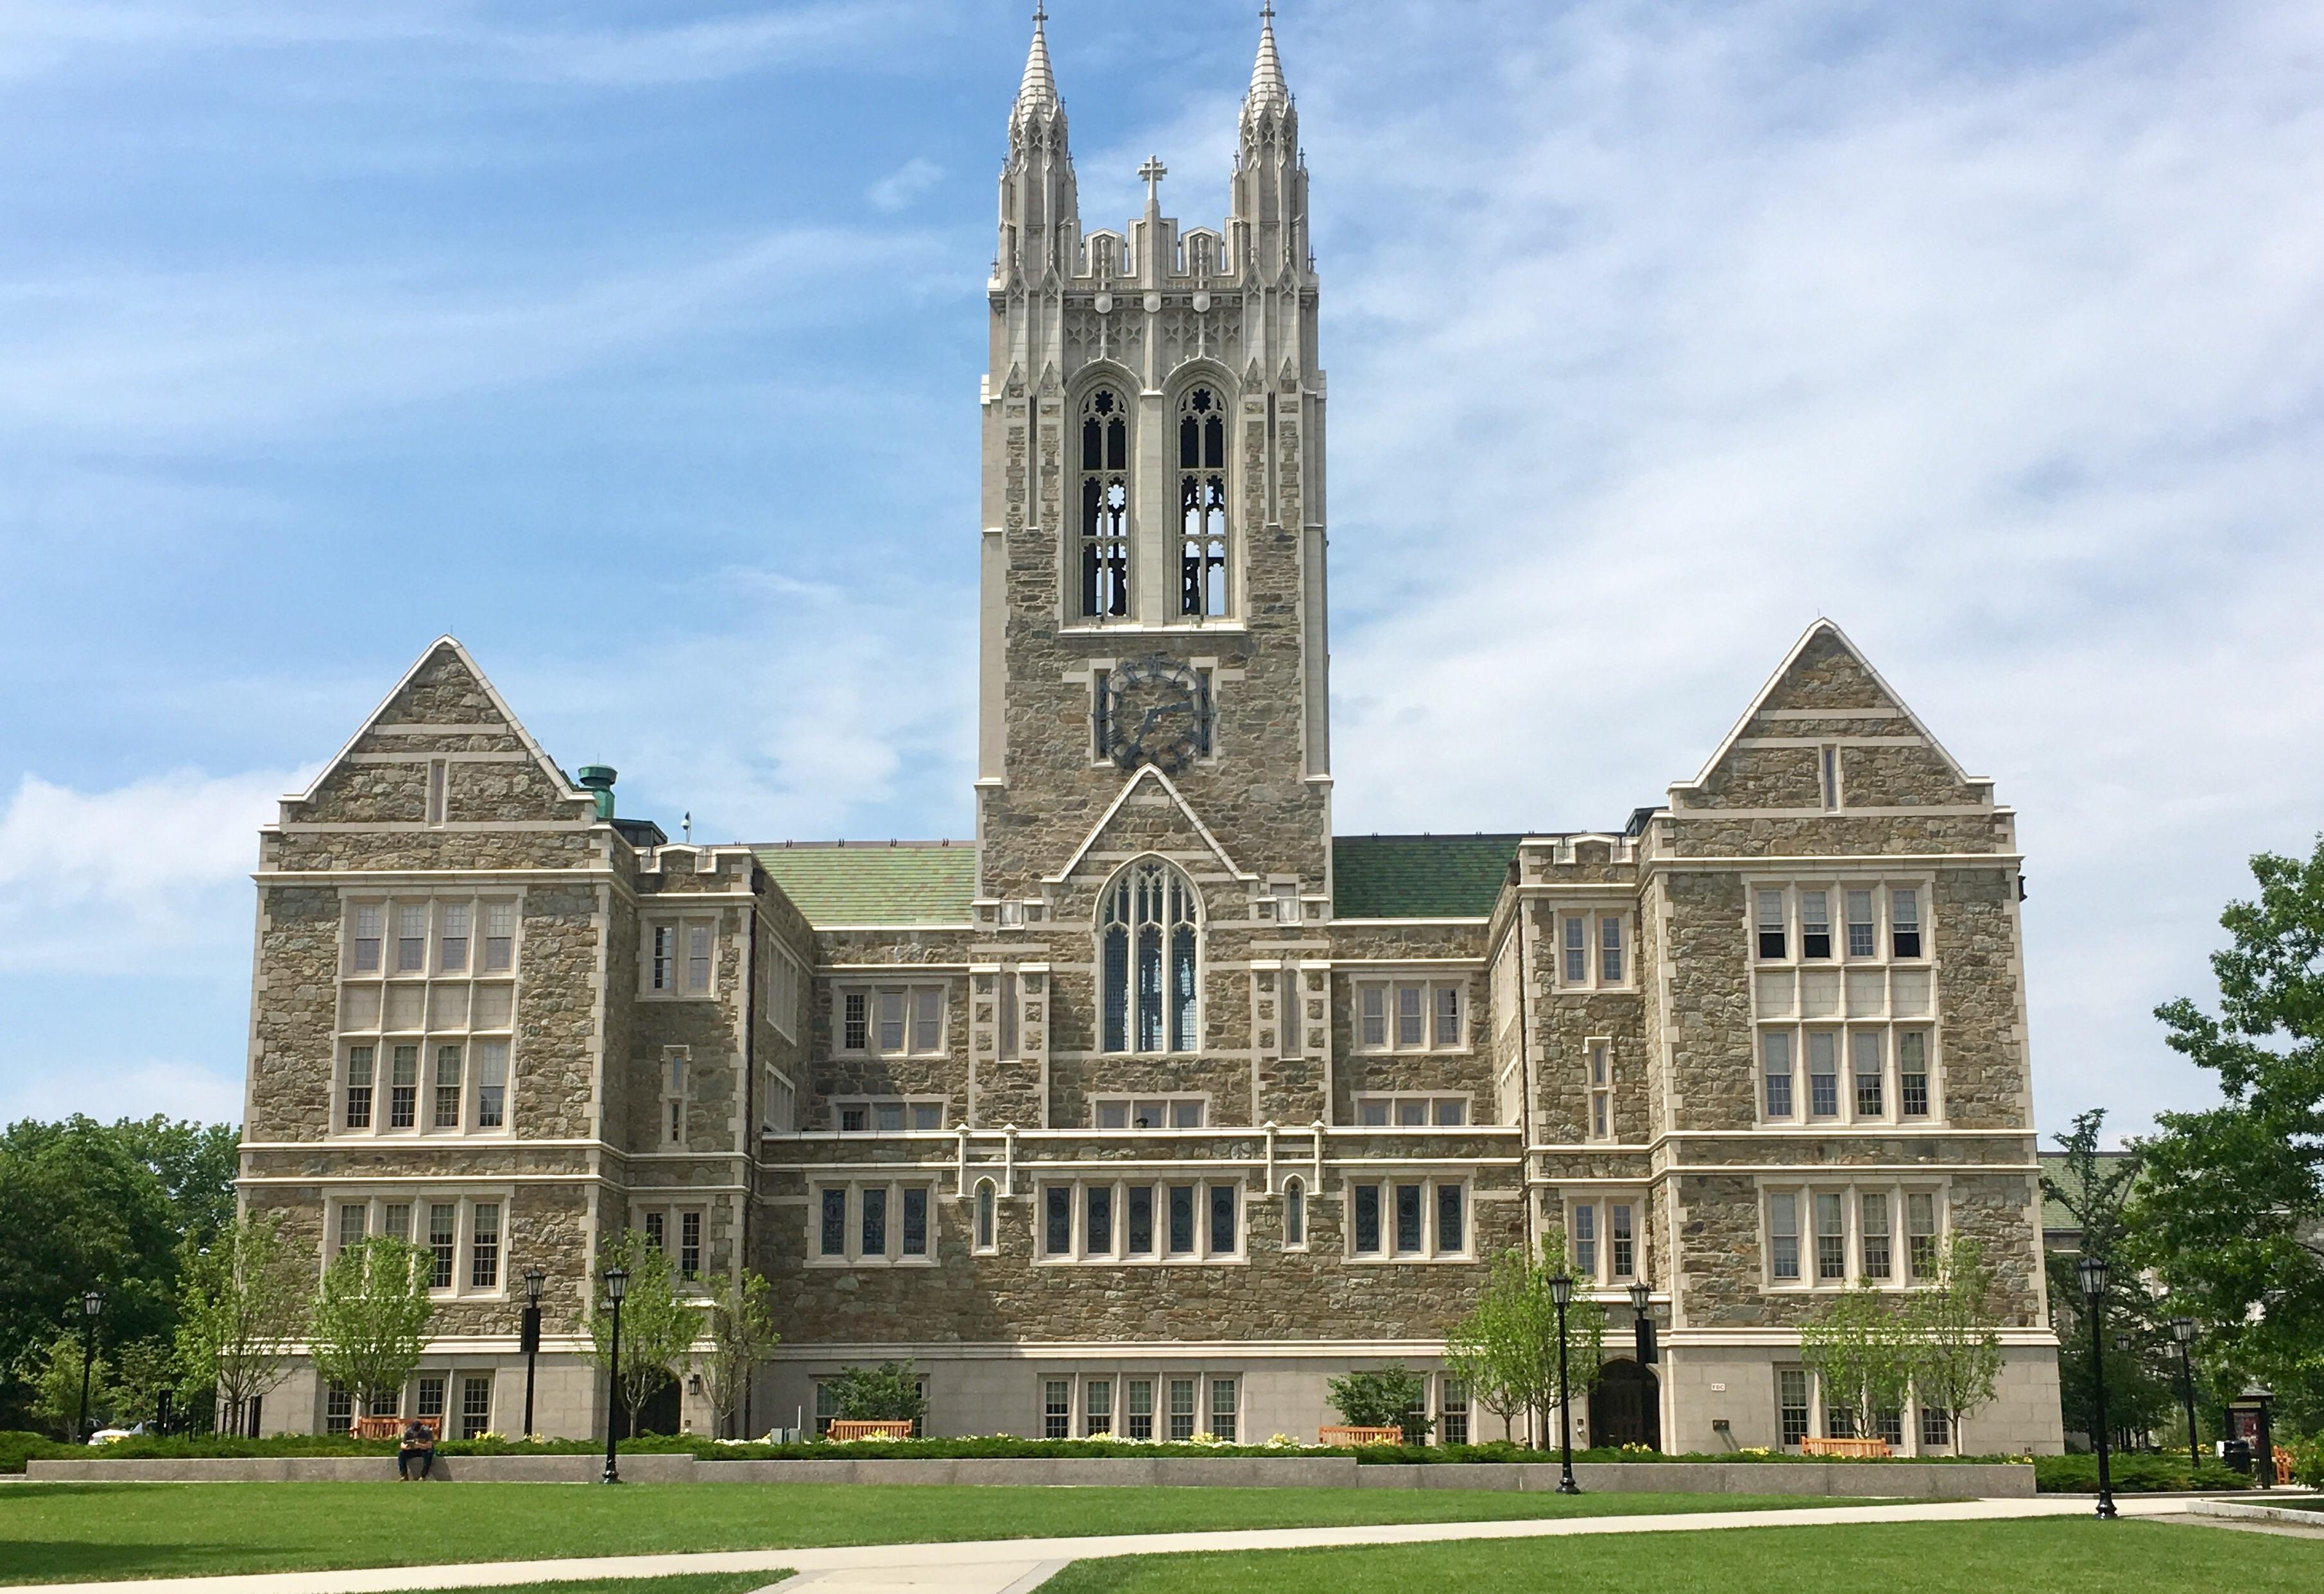 The Gasson Hall is located in Boston College Main Campus.